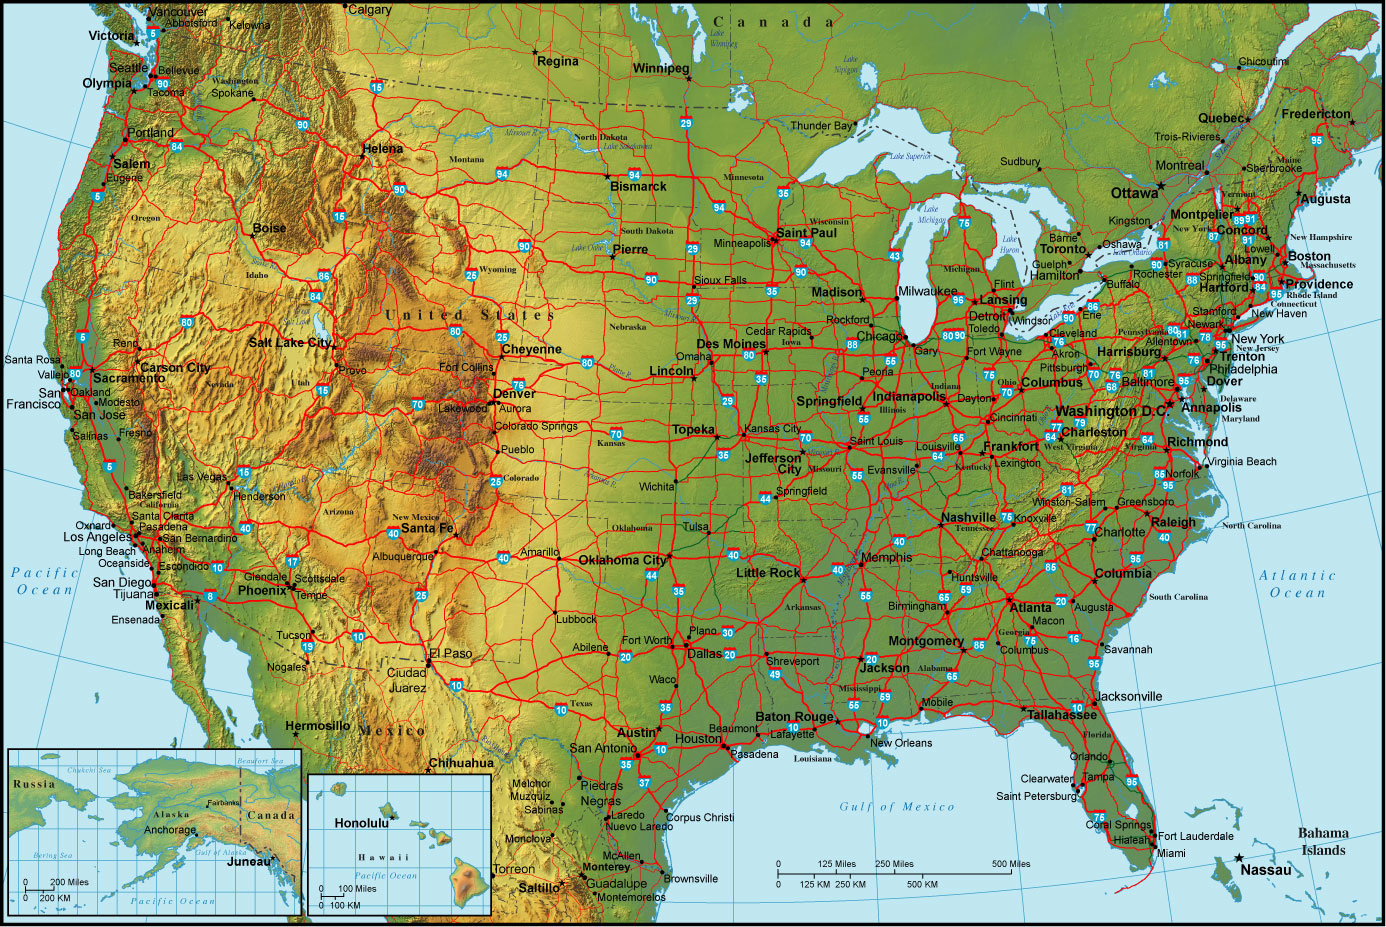 Detailed Topographical Map Of The Usa The Usa Detailed Topographical Map